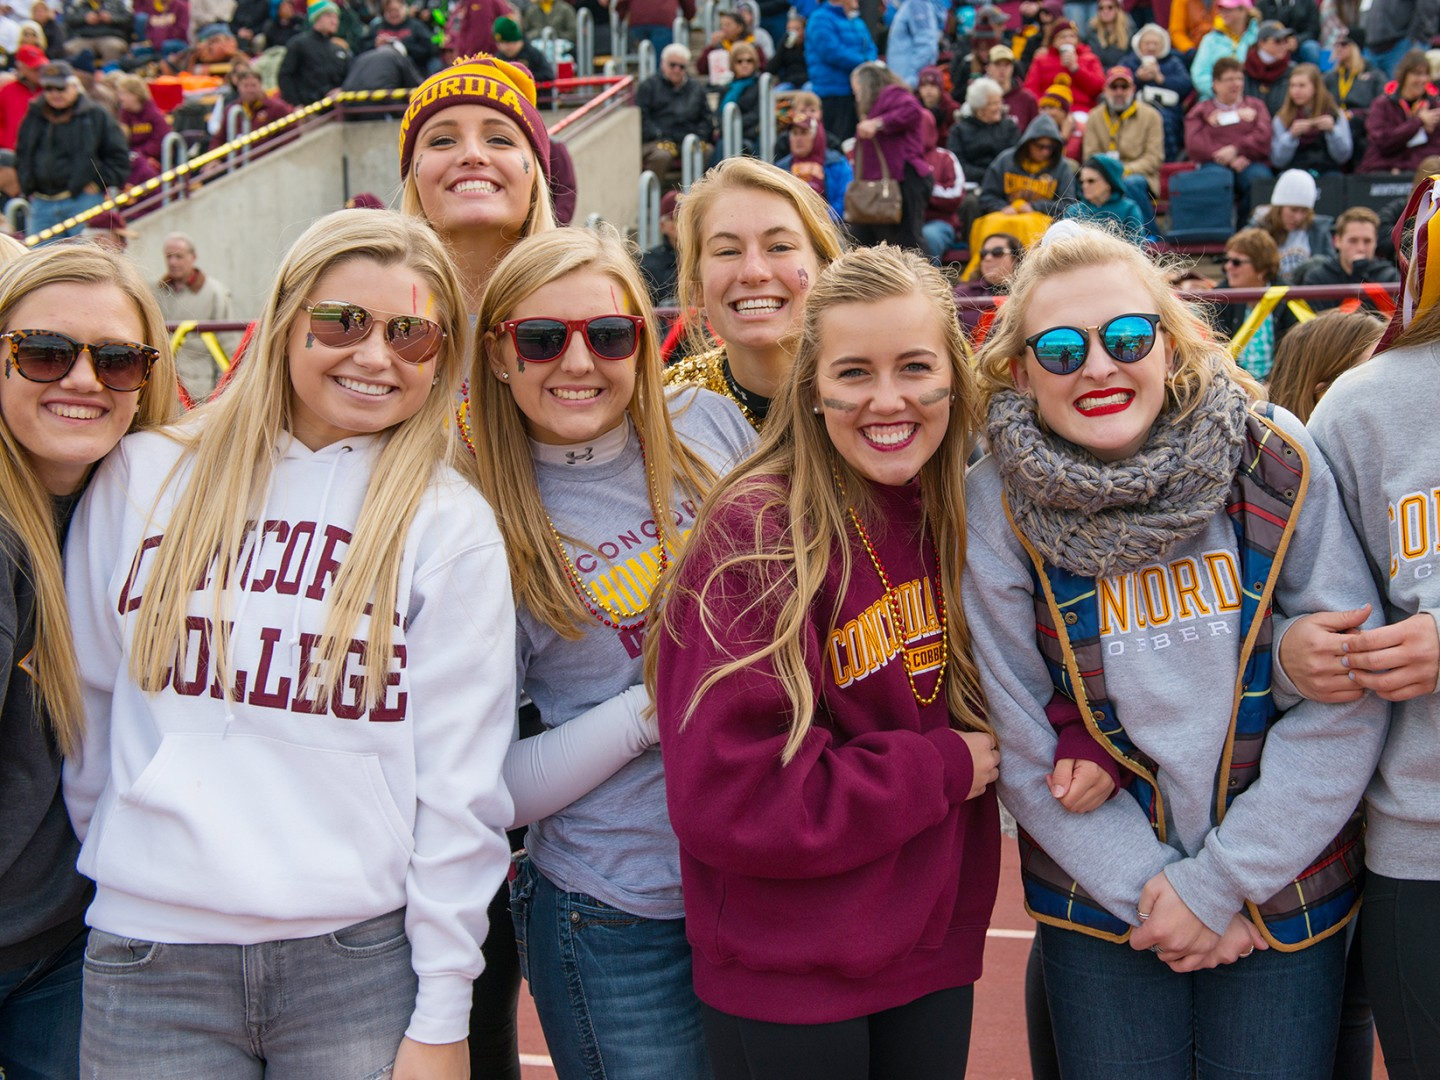 Cobbers in front of stands at Football game